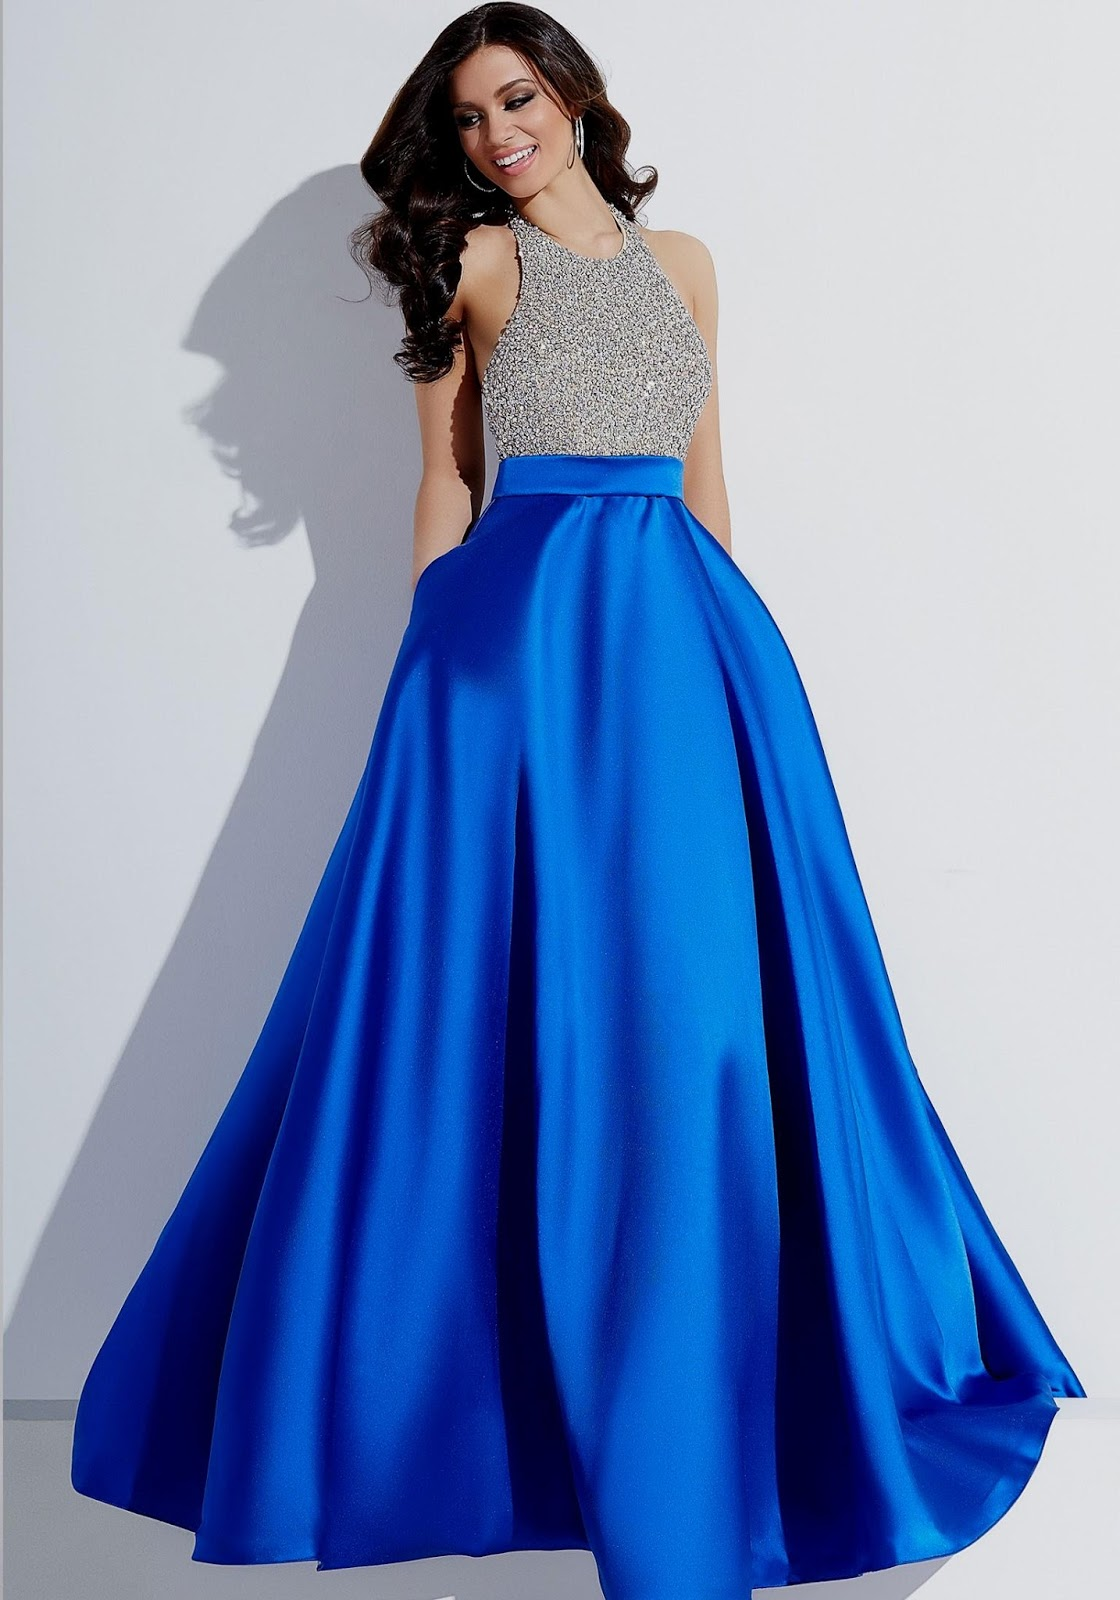 Royal blue bridesmaid dress all about wedding dress for Blue silver wedding dress